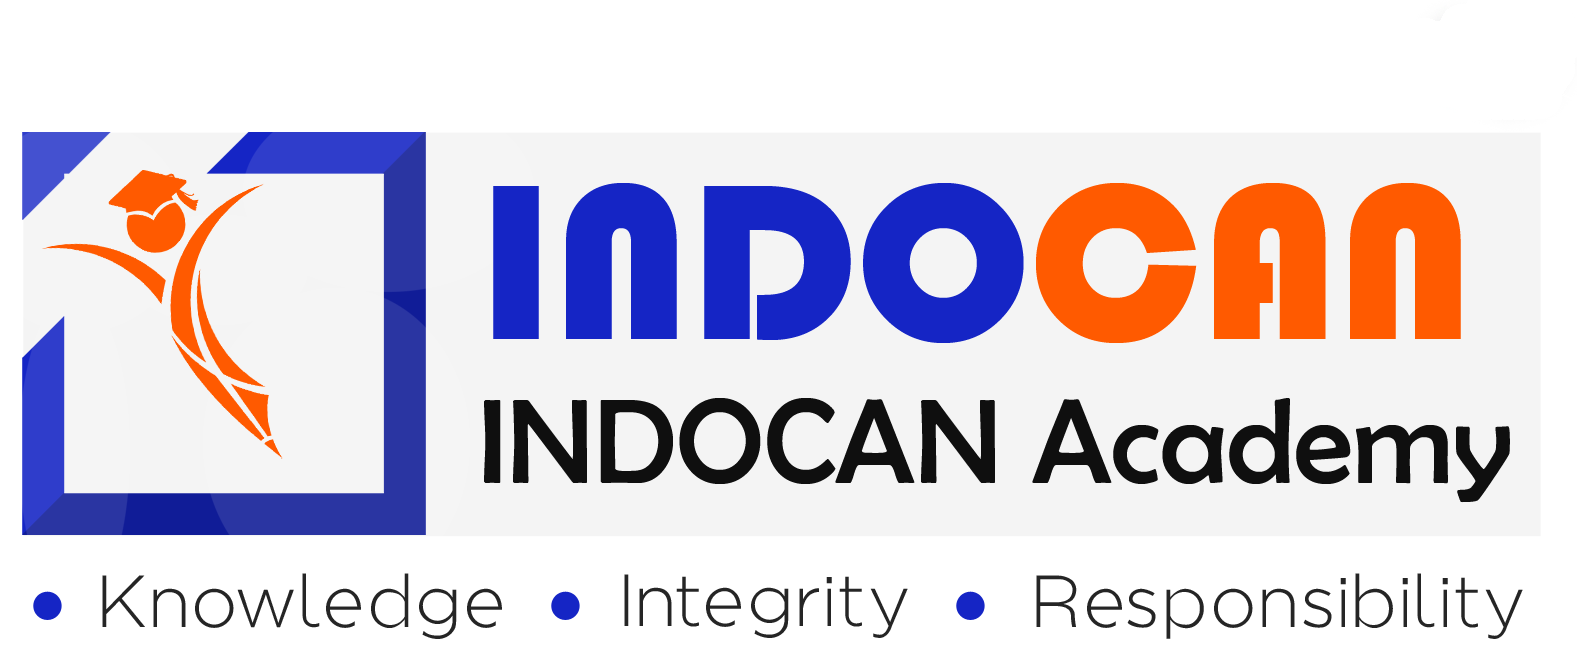 The Indocan Academy